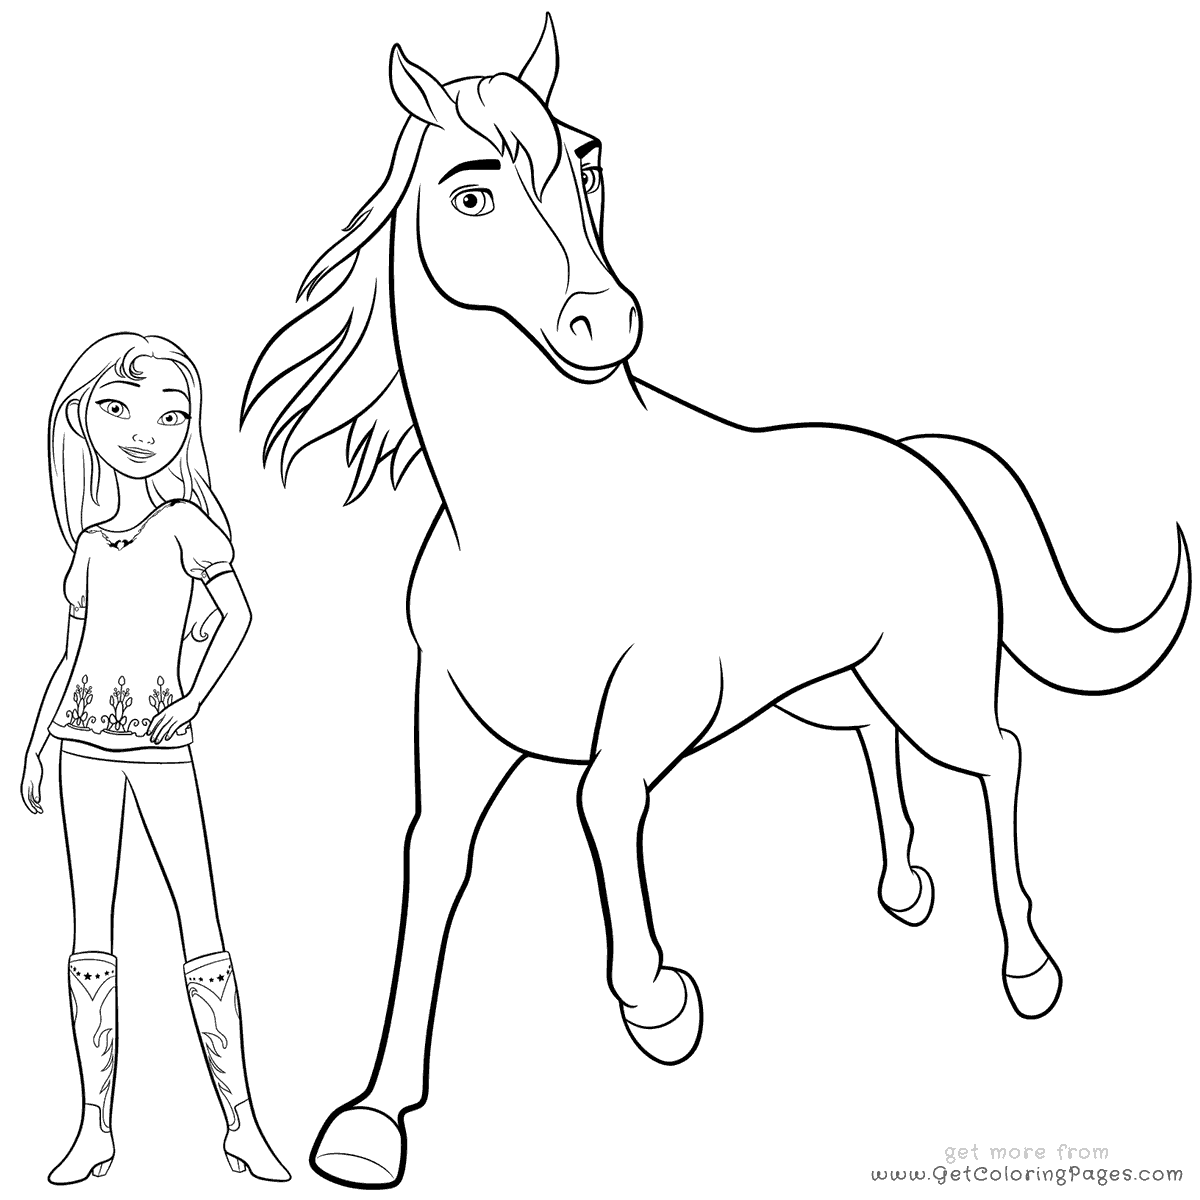 horse coloring pages for girls coloring pages for girls horse free coloring home for pages coloring girls horse